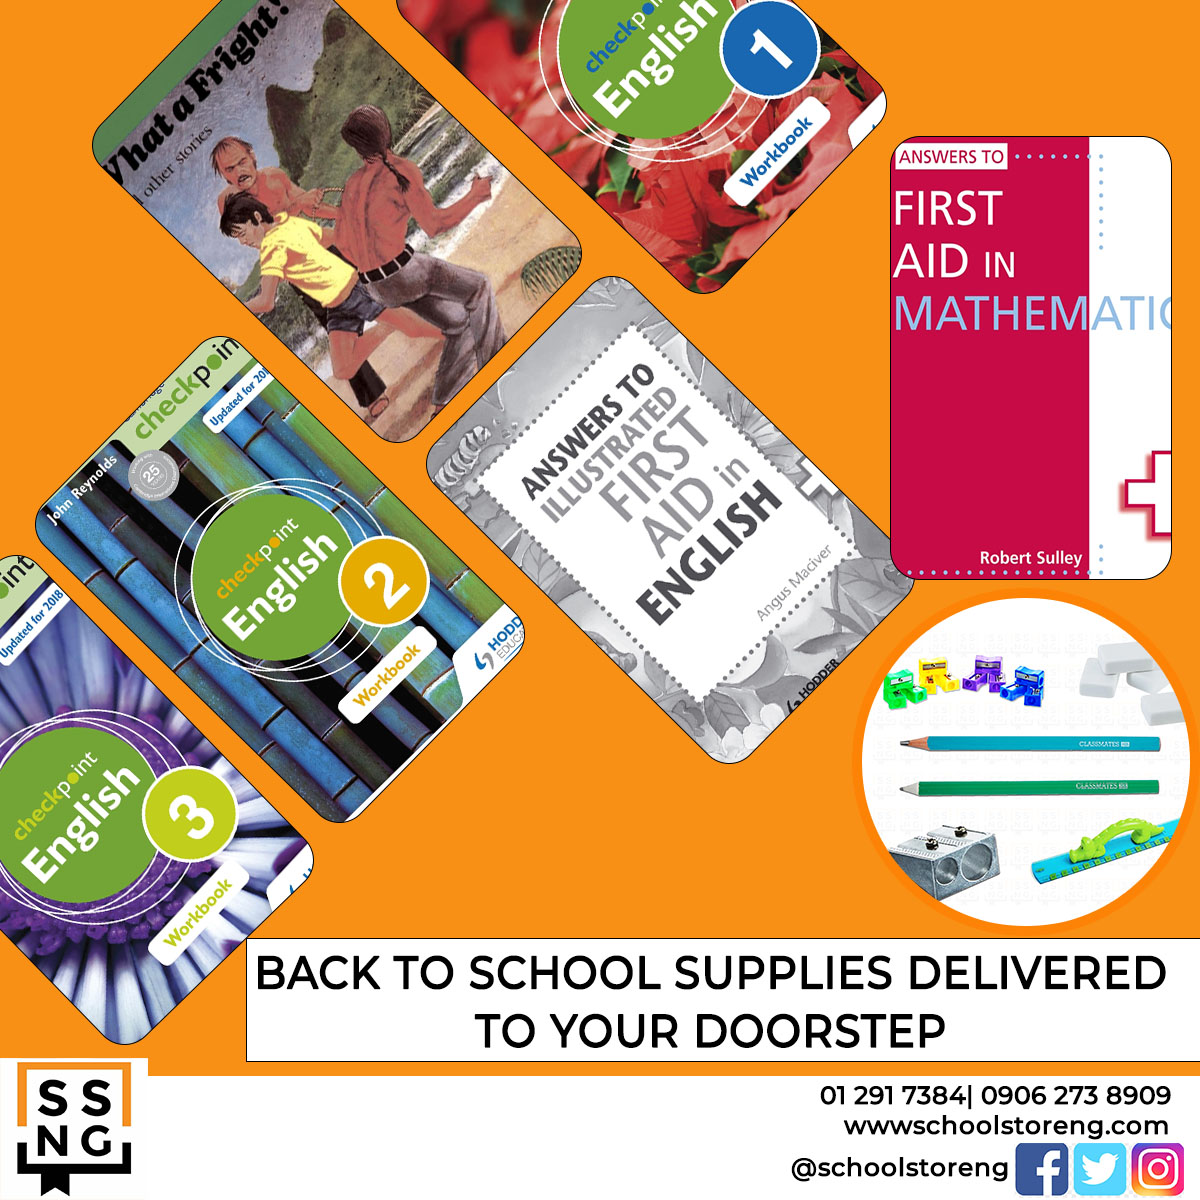 3 Moms win The SchoolStoreNG #redefiningparenting Challenge | Enjoy 75% Discount on School Supplies This Season